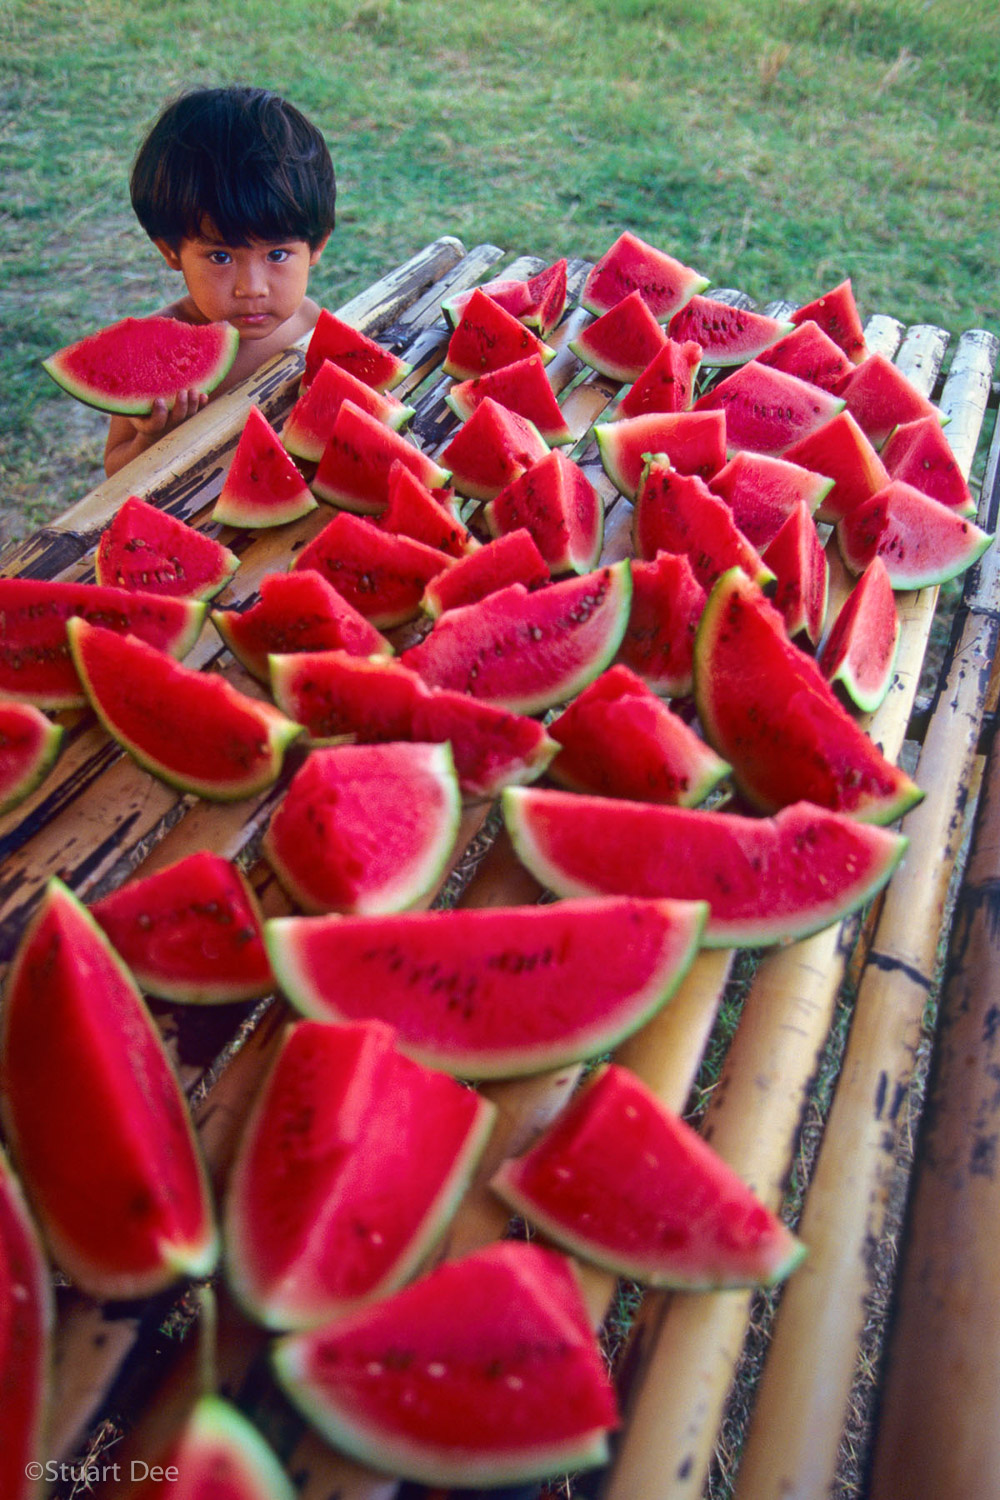 Young boy eating fruit sitting by a table full of sliced watermelon, Iloilo, Philippines  R